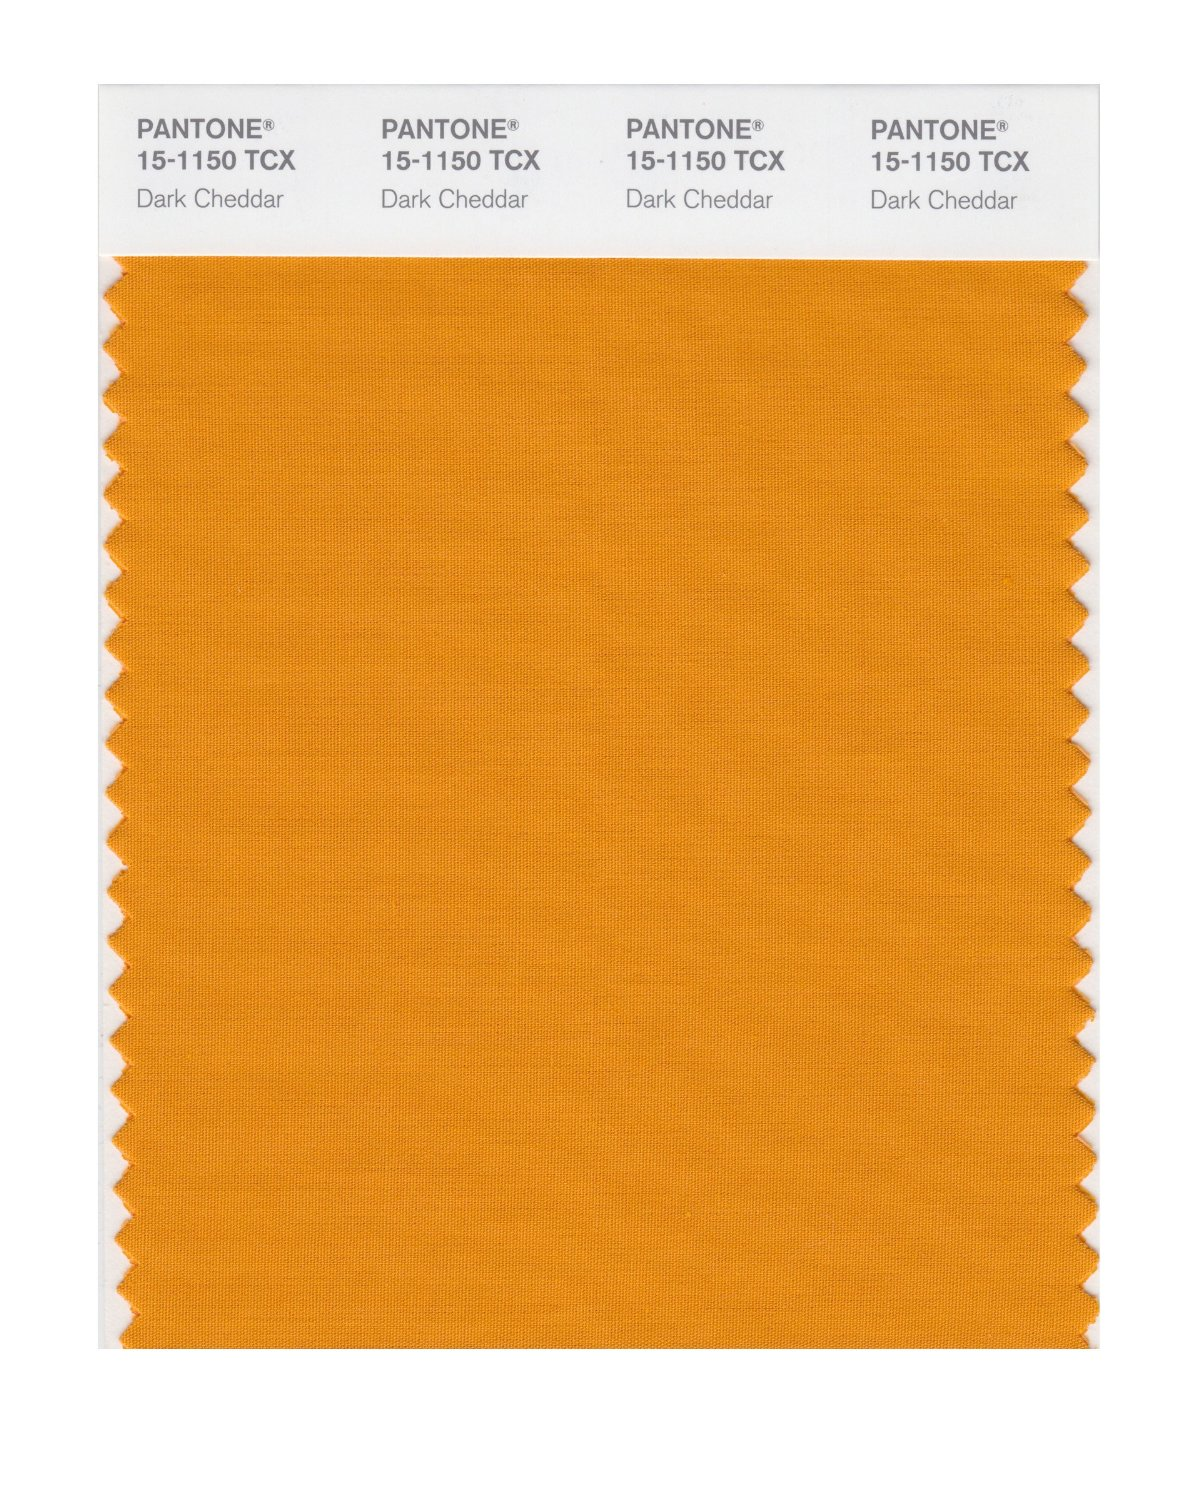 Pantone Smart Swatch 15-1150 Dark Cheddar